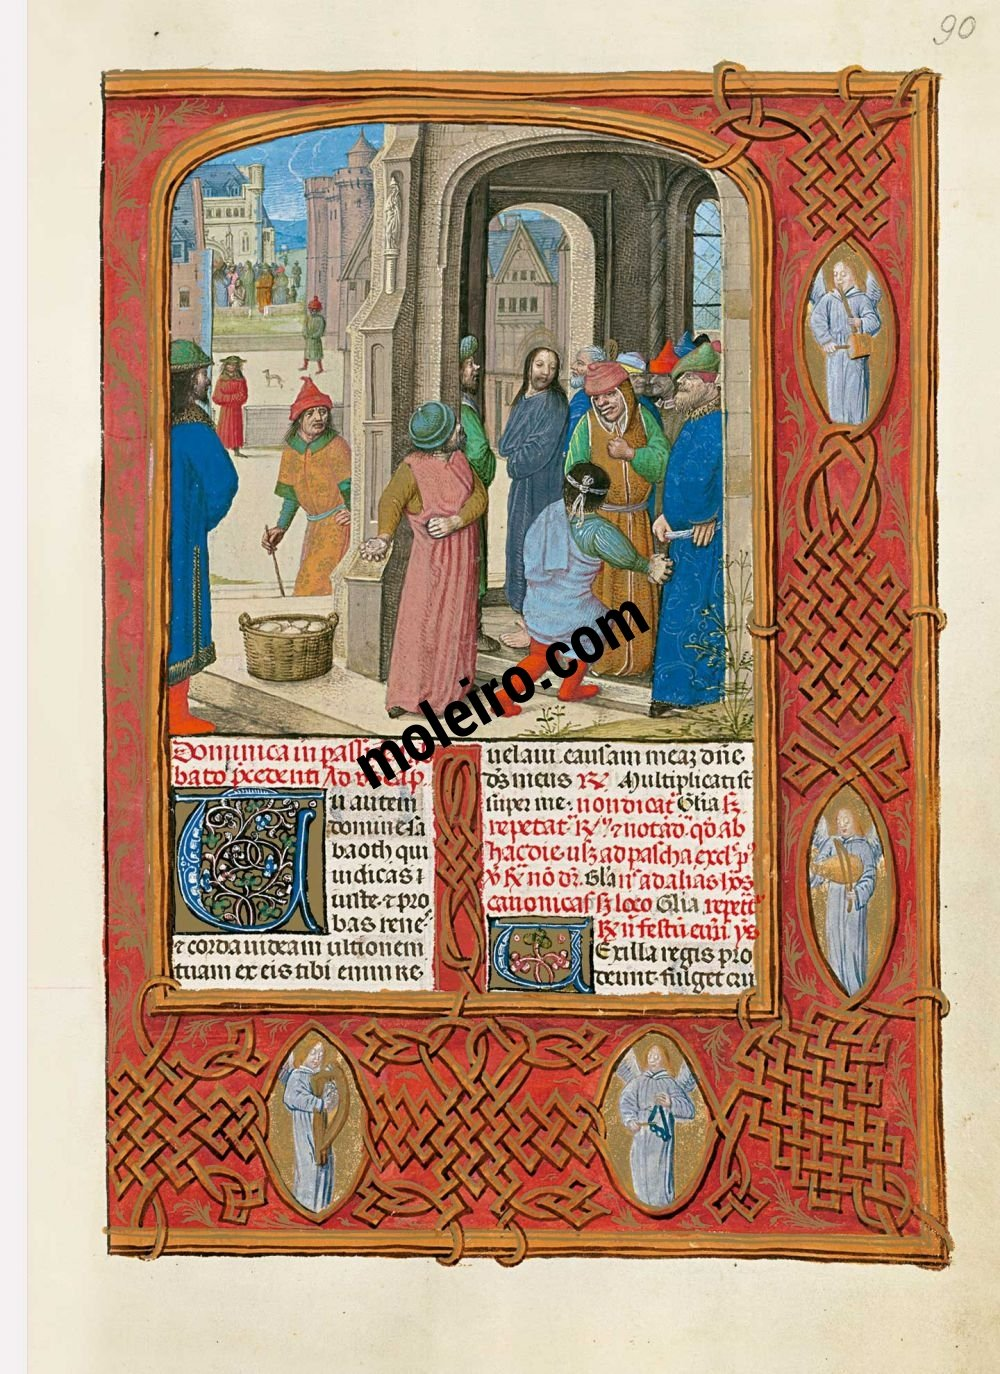 The Isabella Breviary f. 90r, Jews threaten to stone Christ